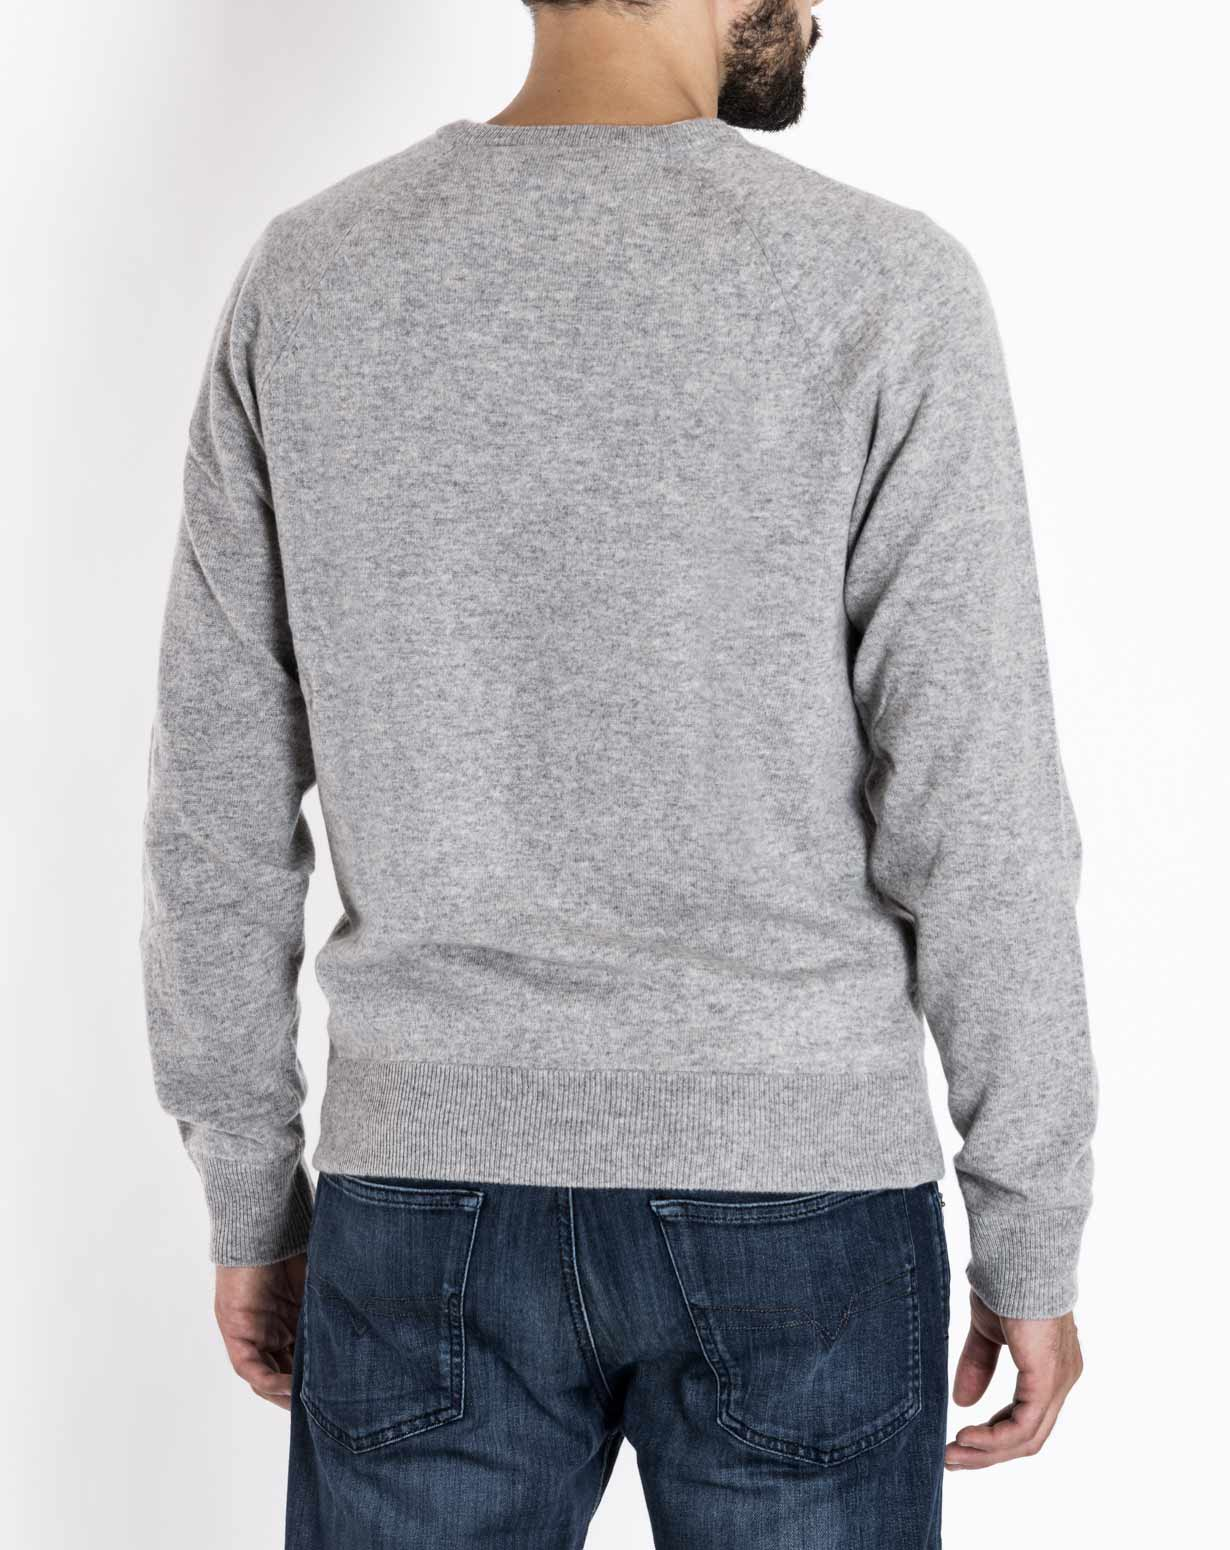 Shop online for Men's Cashmere Sweaters: Crewneck & V-Neck at pimpfilmzcq.cf Find turtlenecks & cardigans. Free Shipping. Free Returns. All the time.